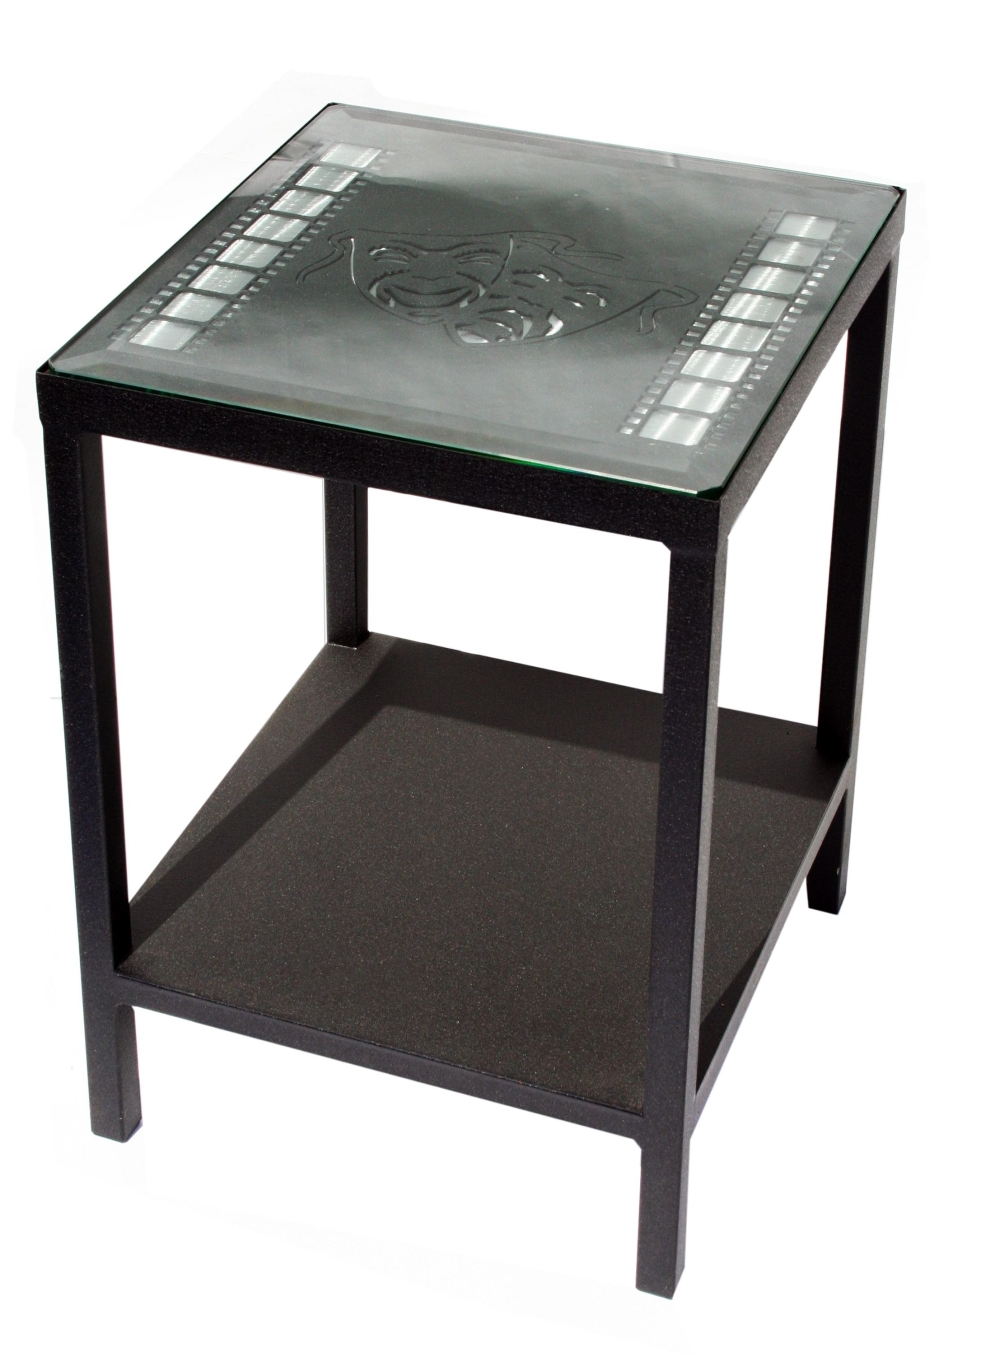 Etonnant Theater Themed End Table With Film Strips